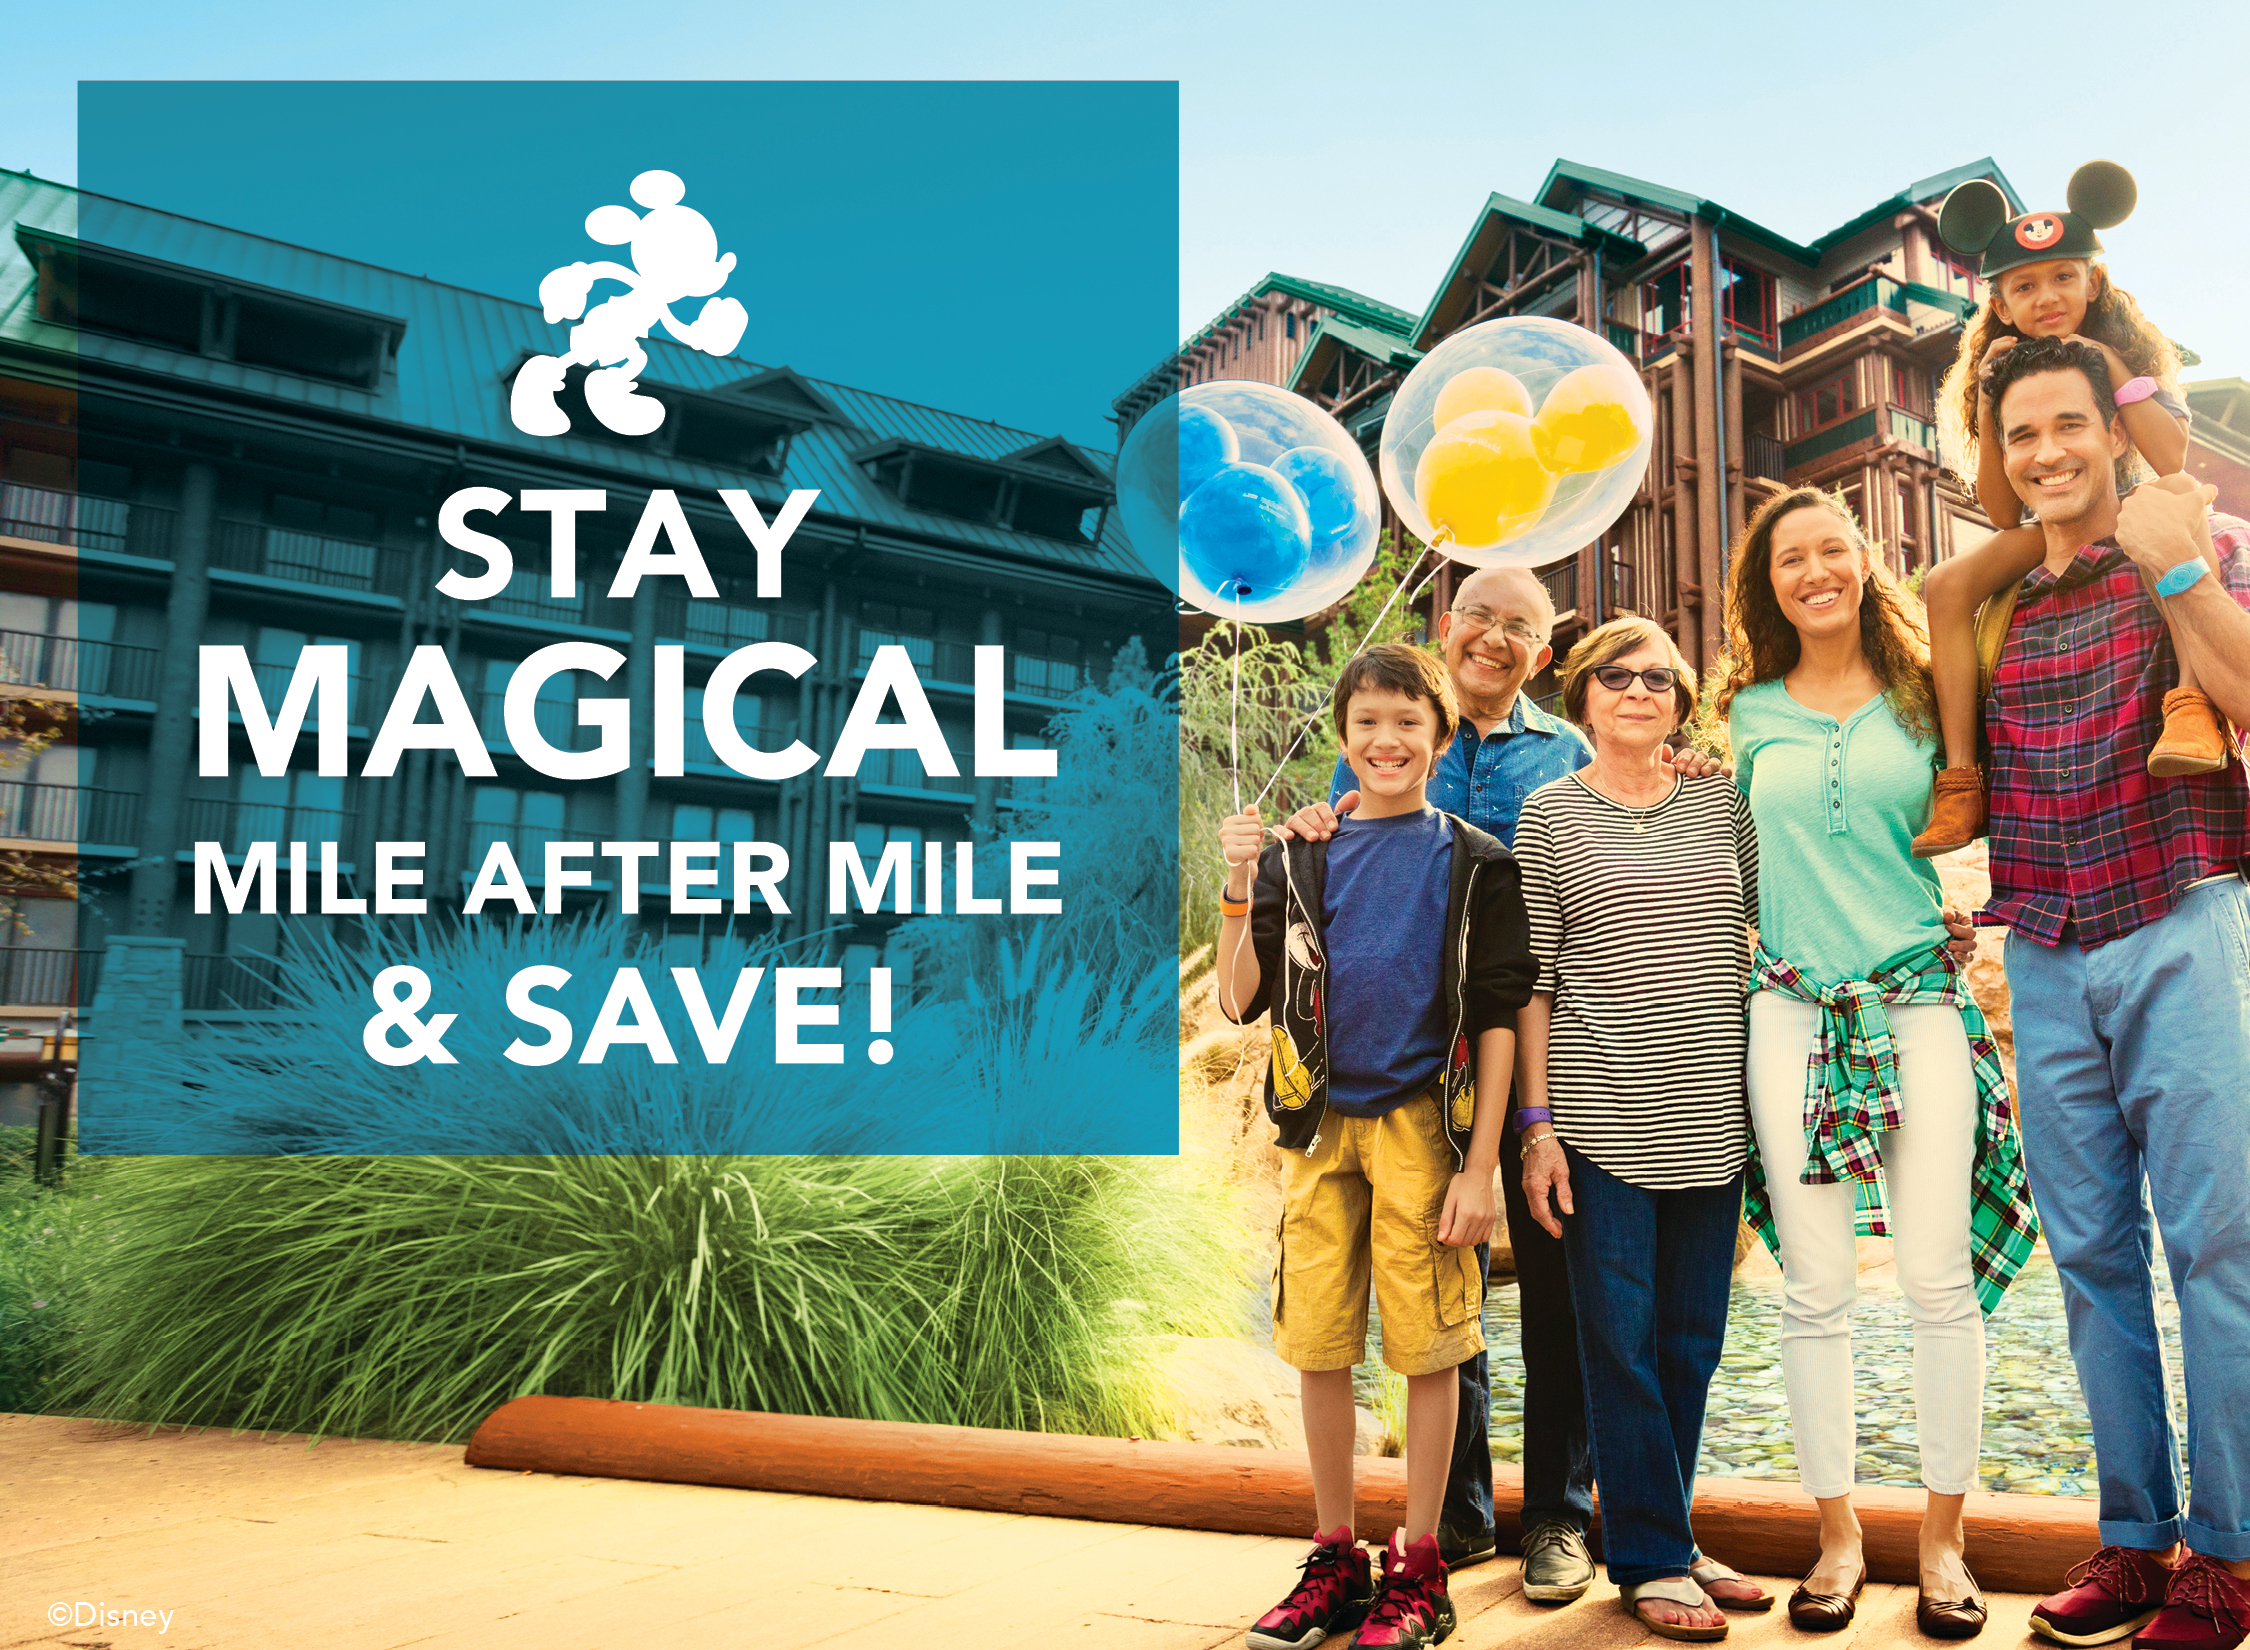 Stay Magical Mile After Mile